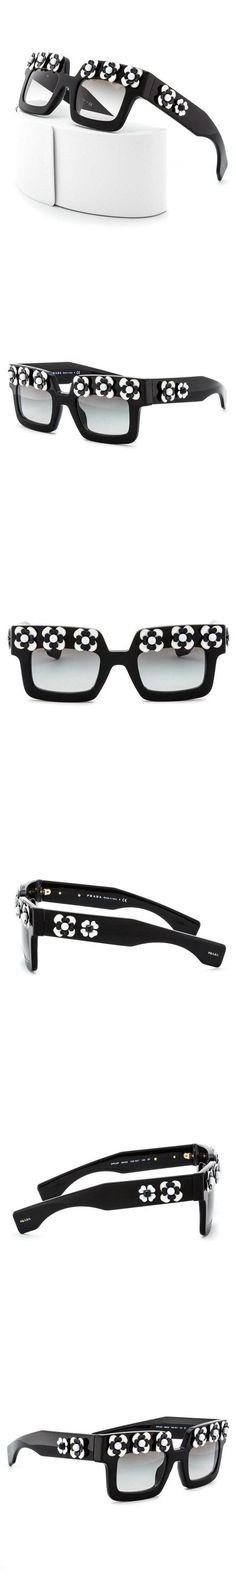 8155b3366ea76c  429 - Prada SPR 25PS 1AB0A7 Poeme Sunglasses Black and White, Black  Gradient Lenses